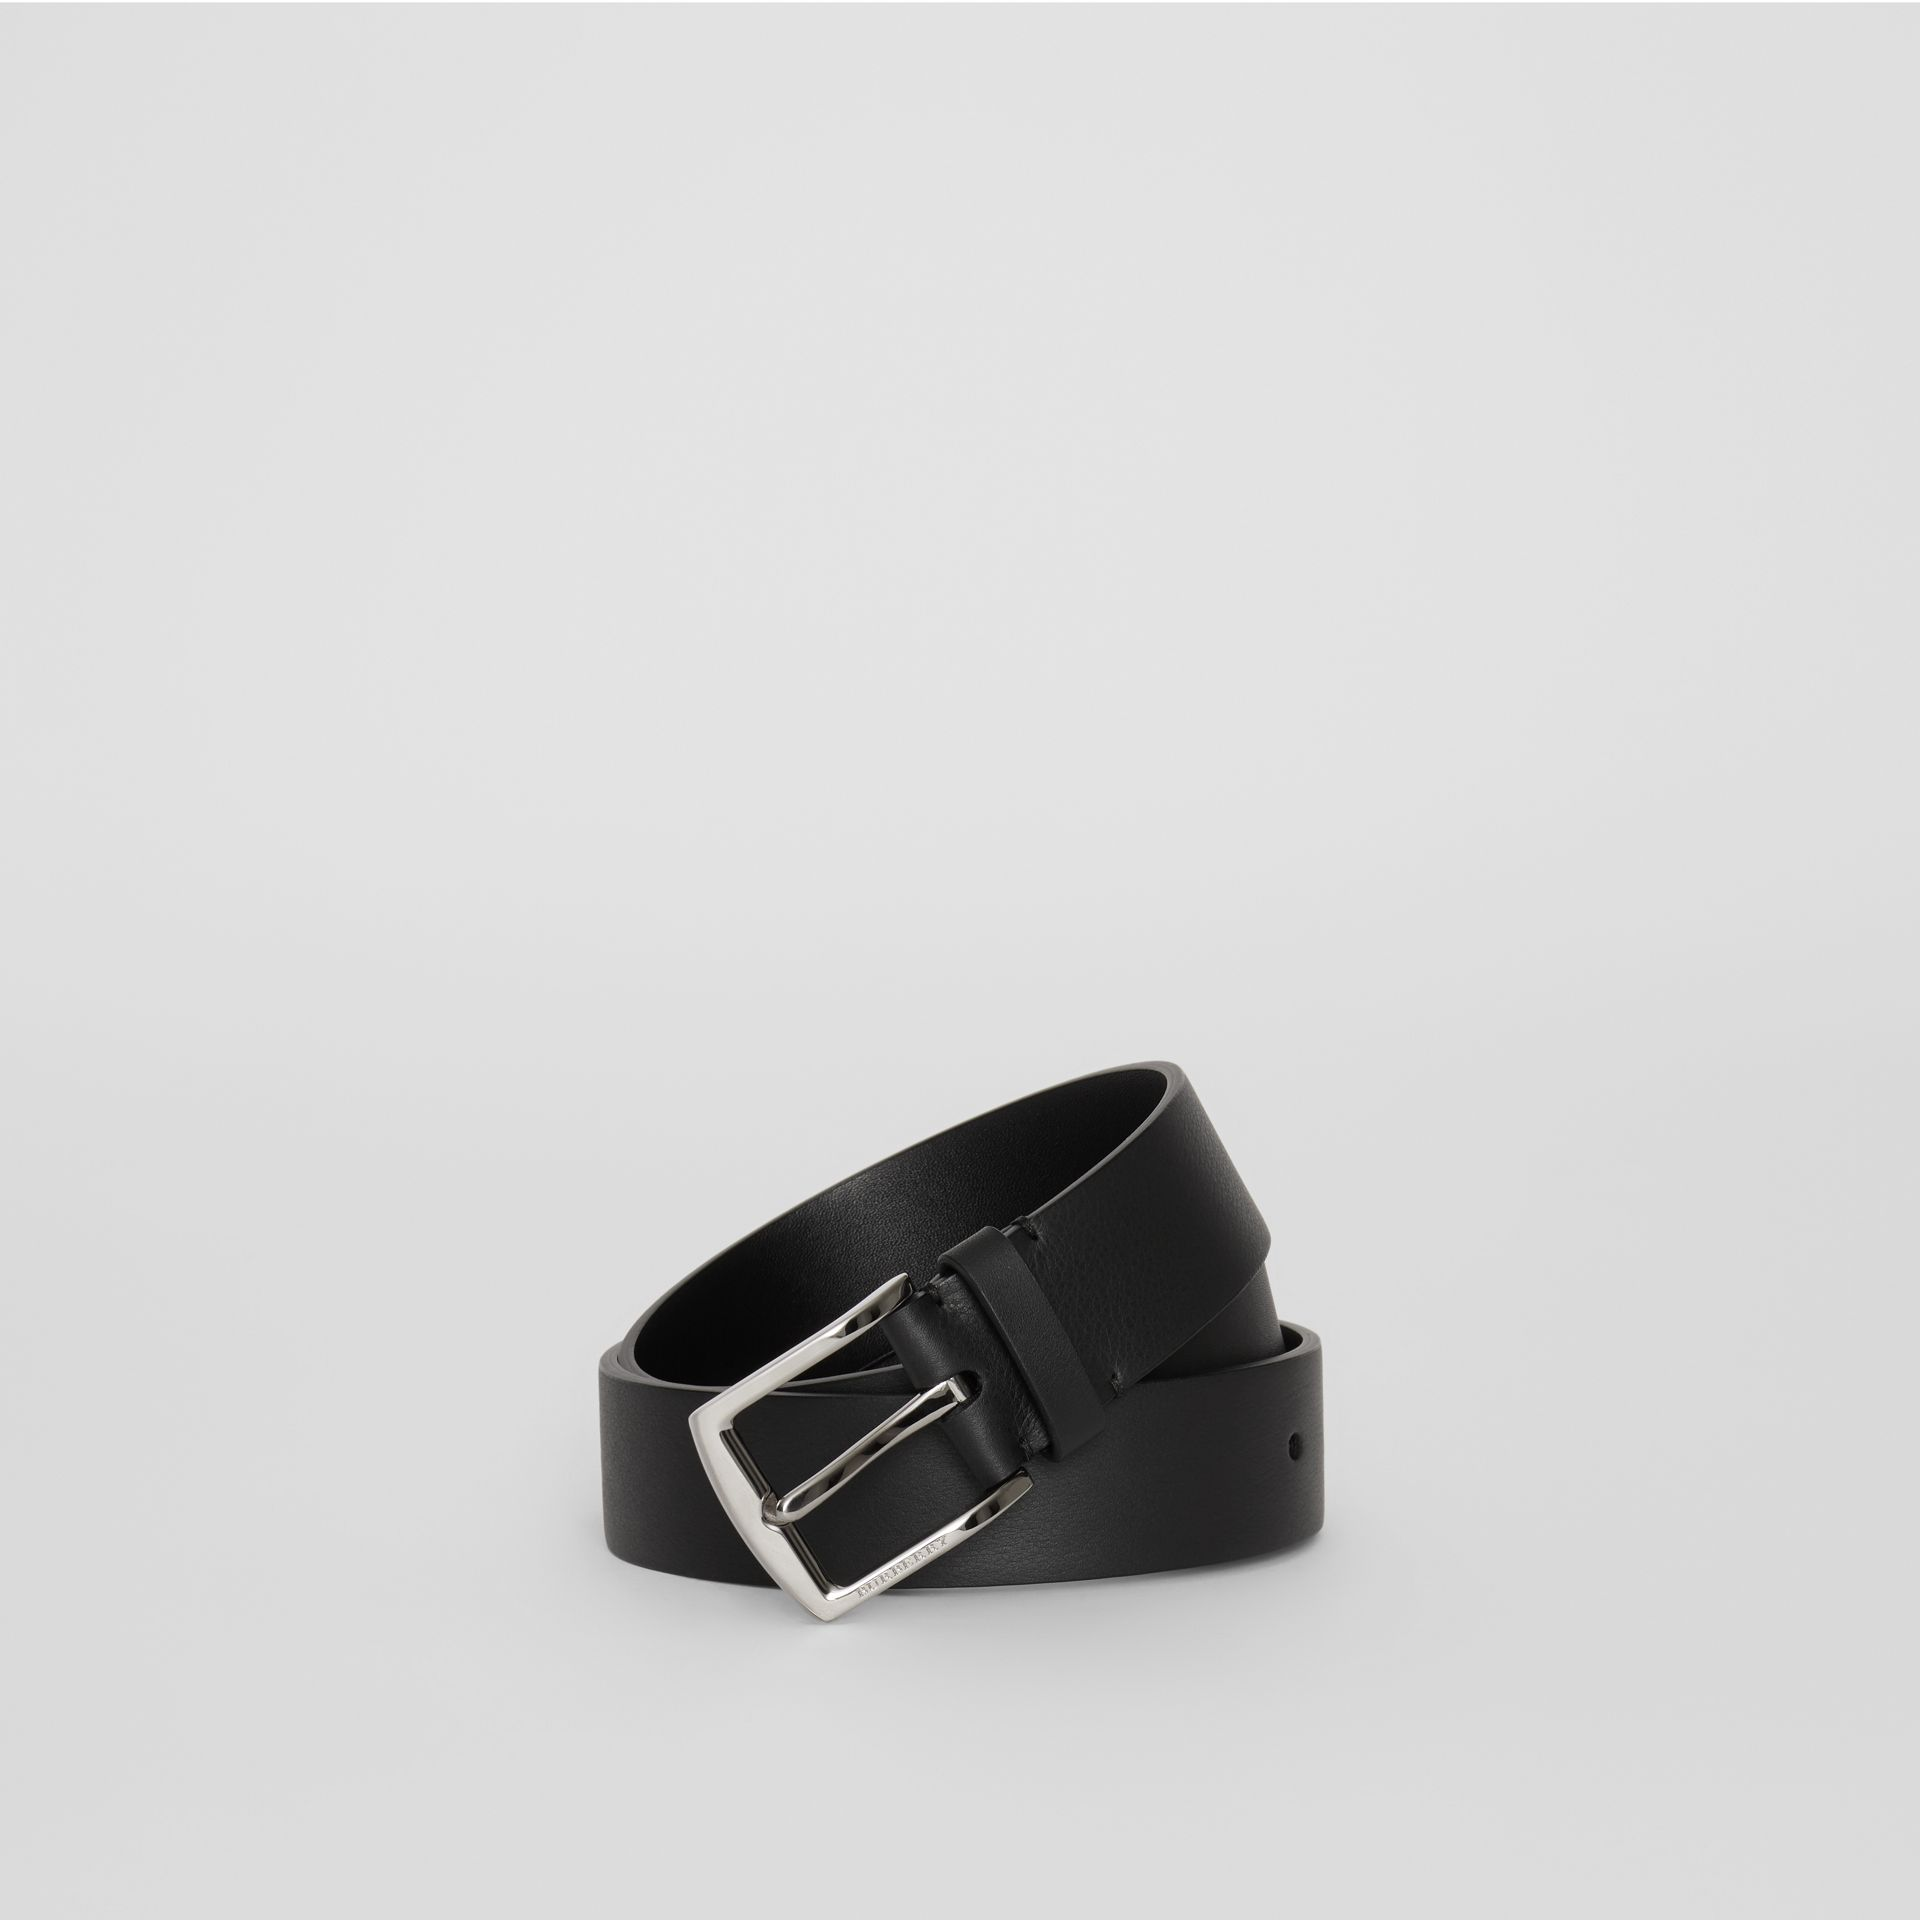 Embossed Crest Leather Belt in Black - Men | Burberry - gallery image 0